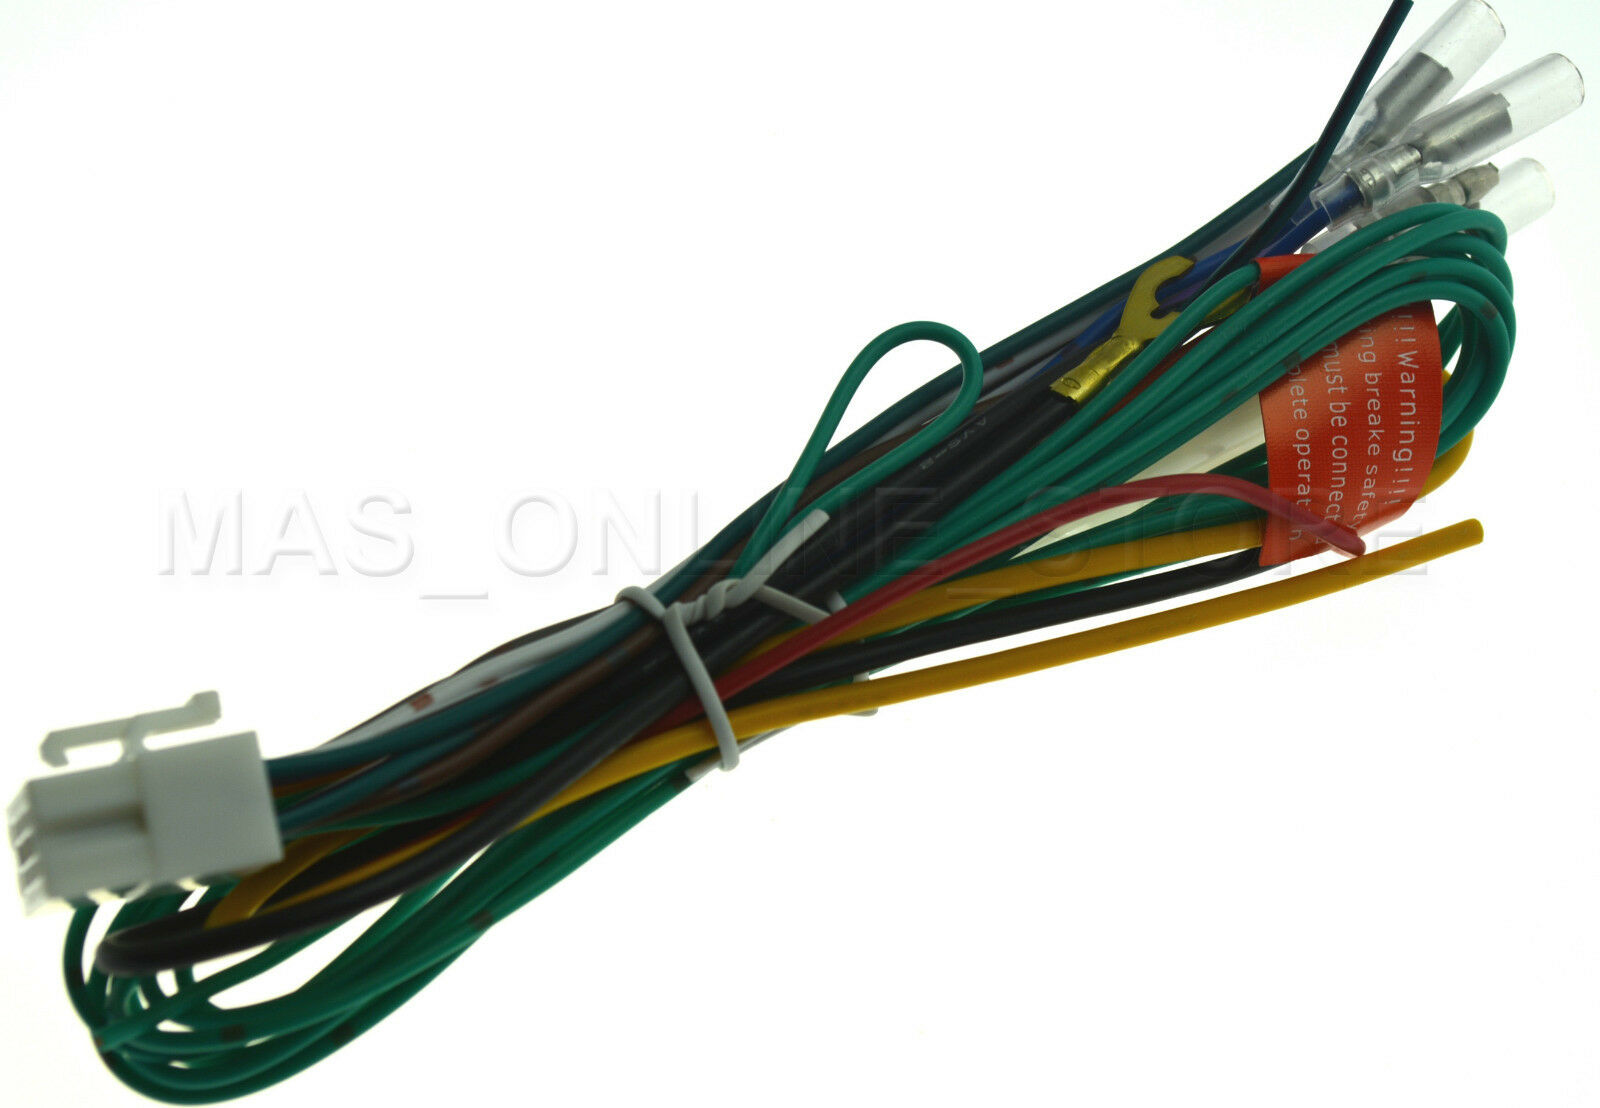 Clarion Vz-409 Vz409 Genuine Power Wire Harness *pay Today Ships Today* 1  of 5Only 2 available Clarion Vz-409 Vz409 Genuine Power Wire Harness ...